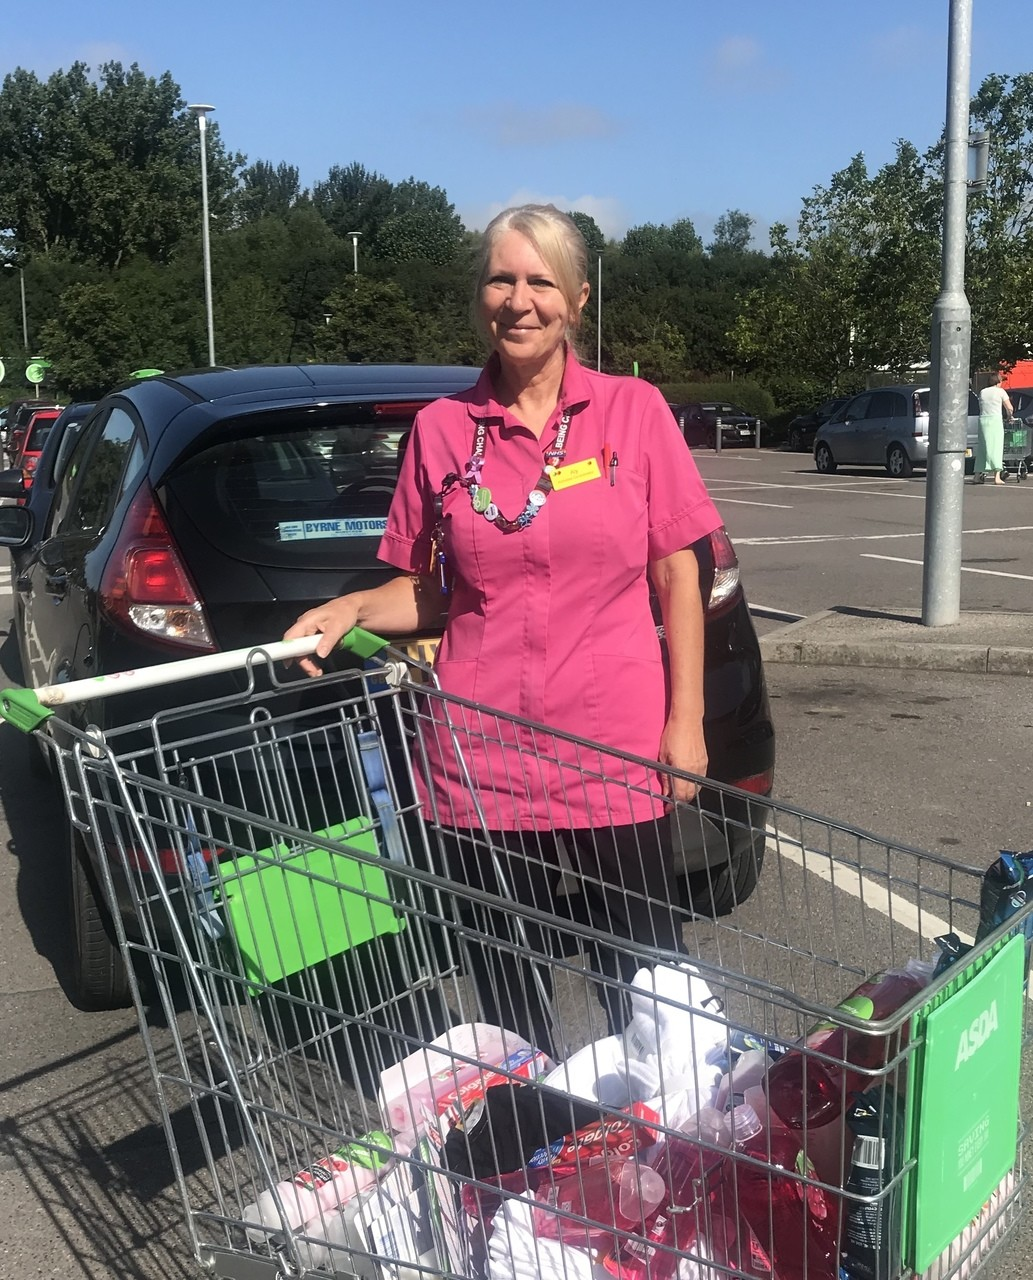 Frome Community Hospital 'simply the best' | Asda Frome